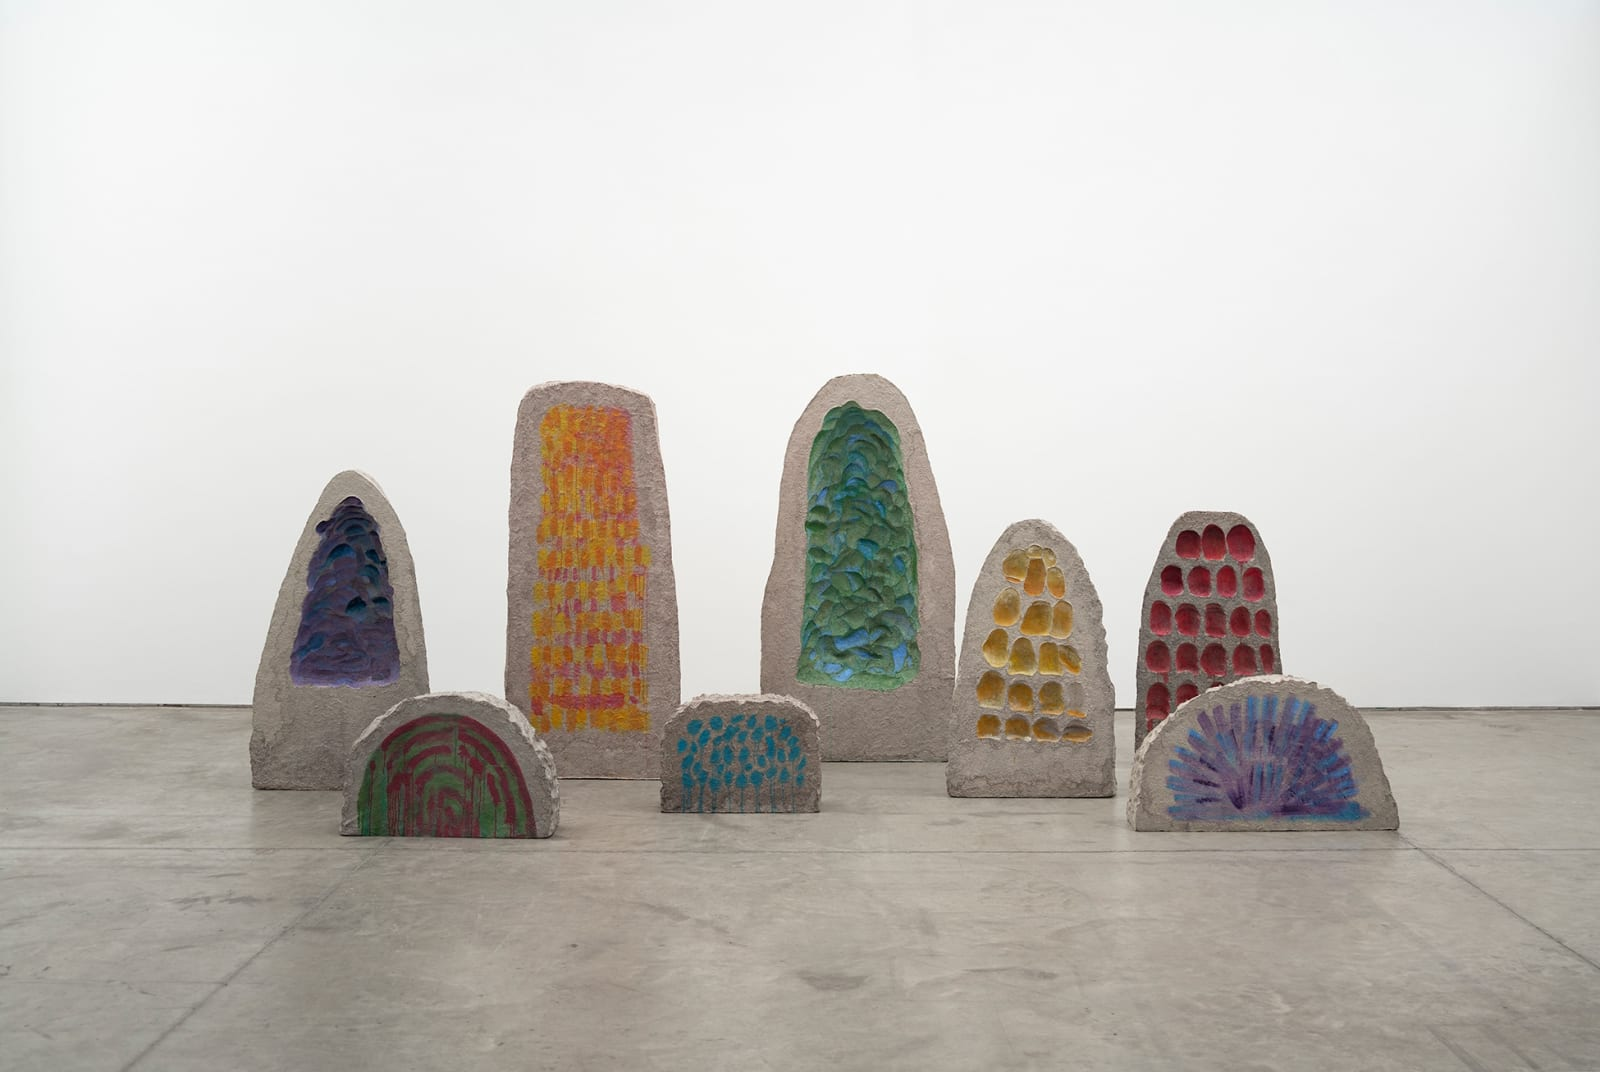 Erika Verzutti Mineral, 2019 Papier-mâché, polystyrene, steel, and oil 8 pieces, overall dimensions: 201 1/2 x 86 5/8 x 100 13/16 in (512 x 220 x 256 cm)